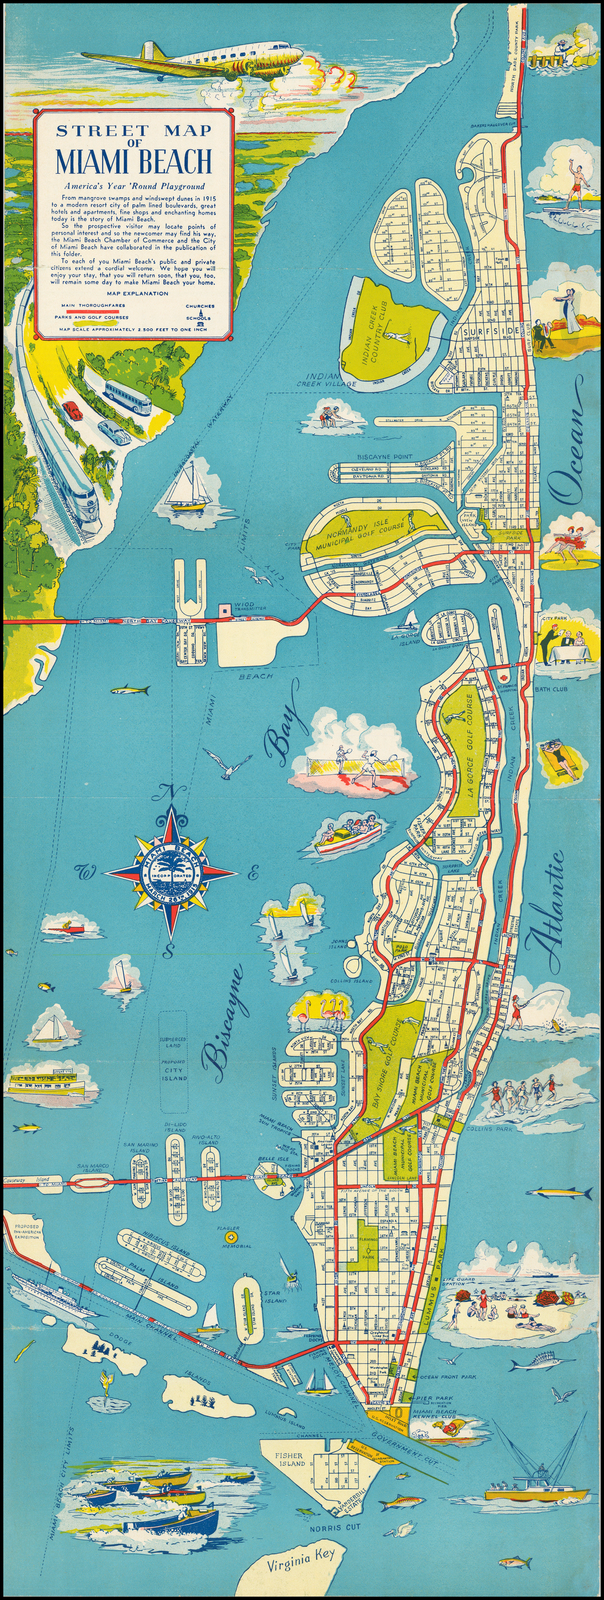 street map of miami beach america's year round playground